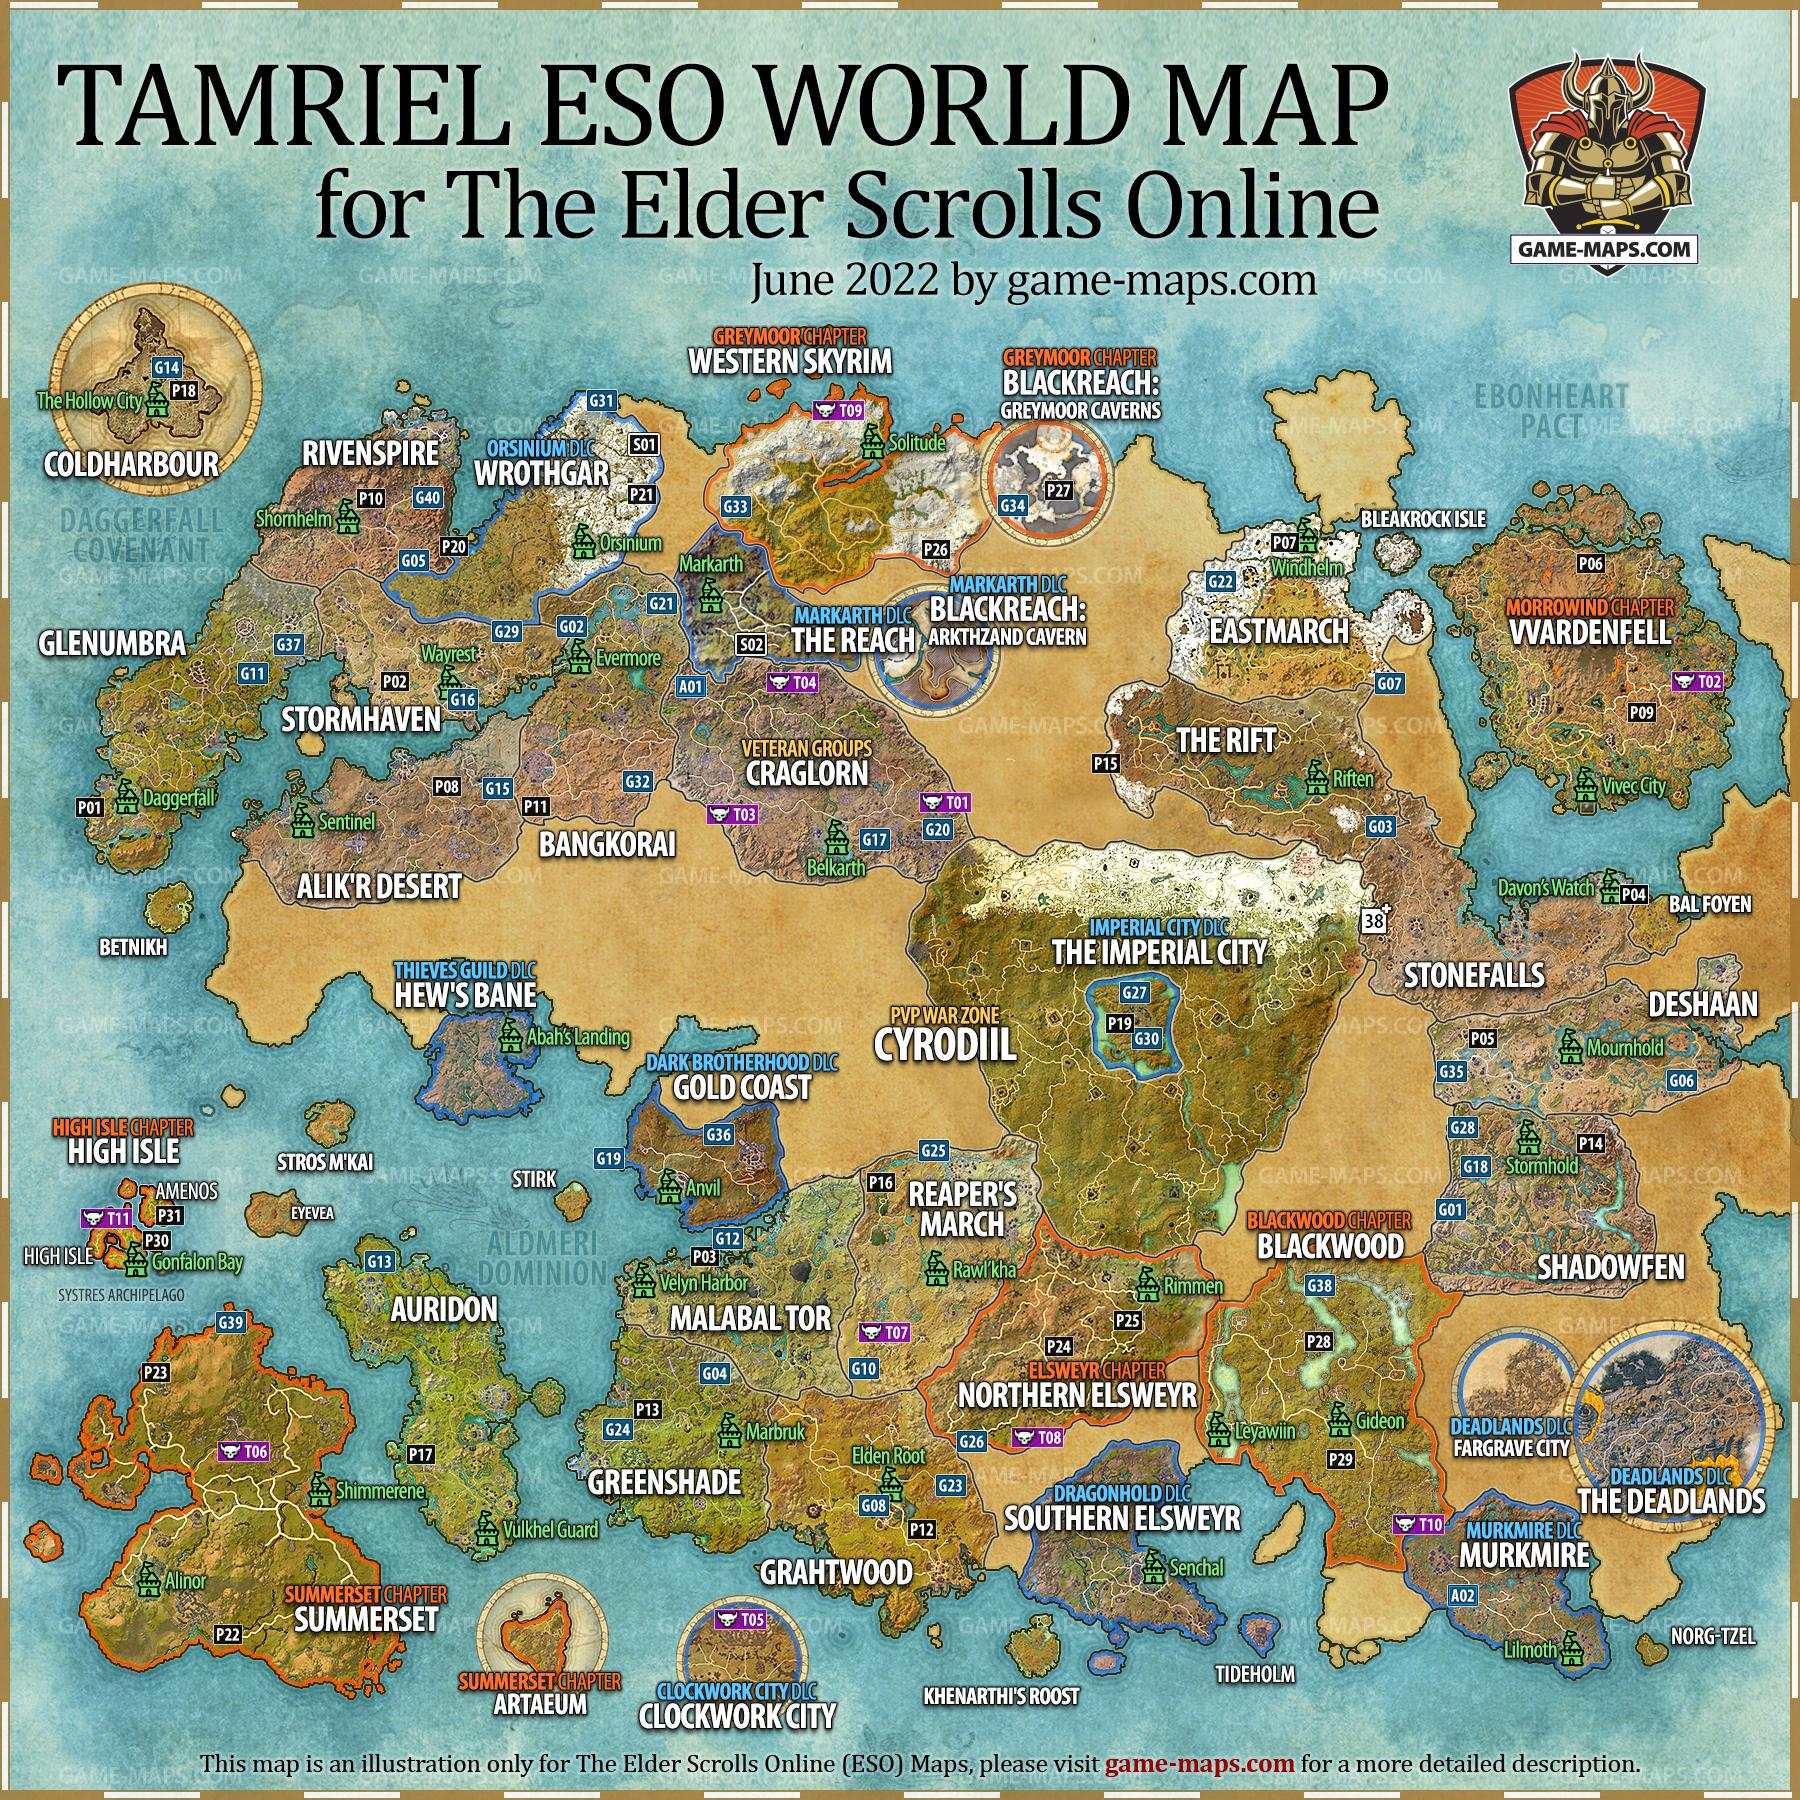 Eso maps the elder scrolls online walkthrough game guide game world map of tamriel for the elder scrolls online eso video game gumiabroncs